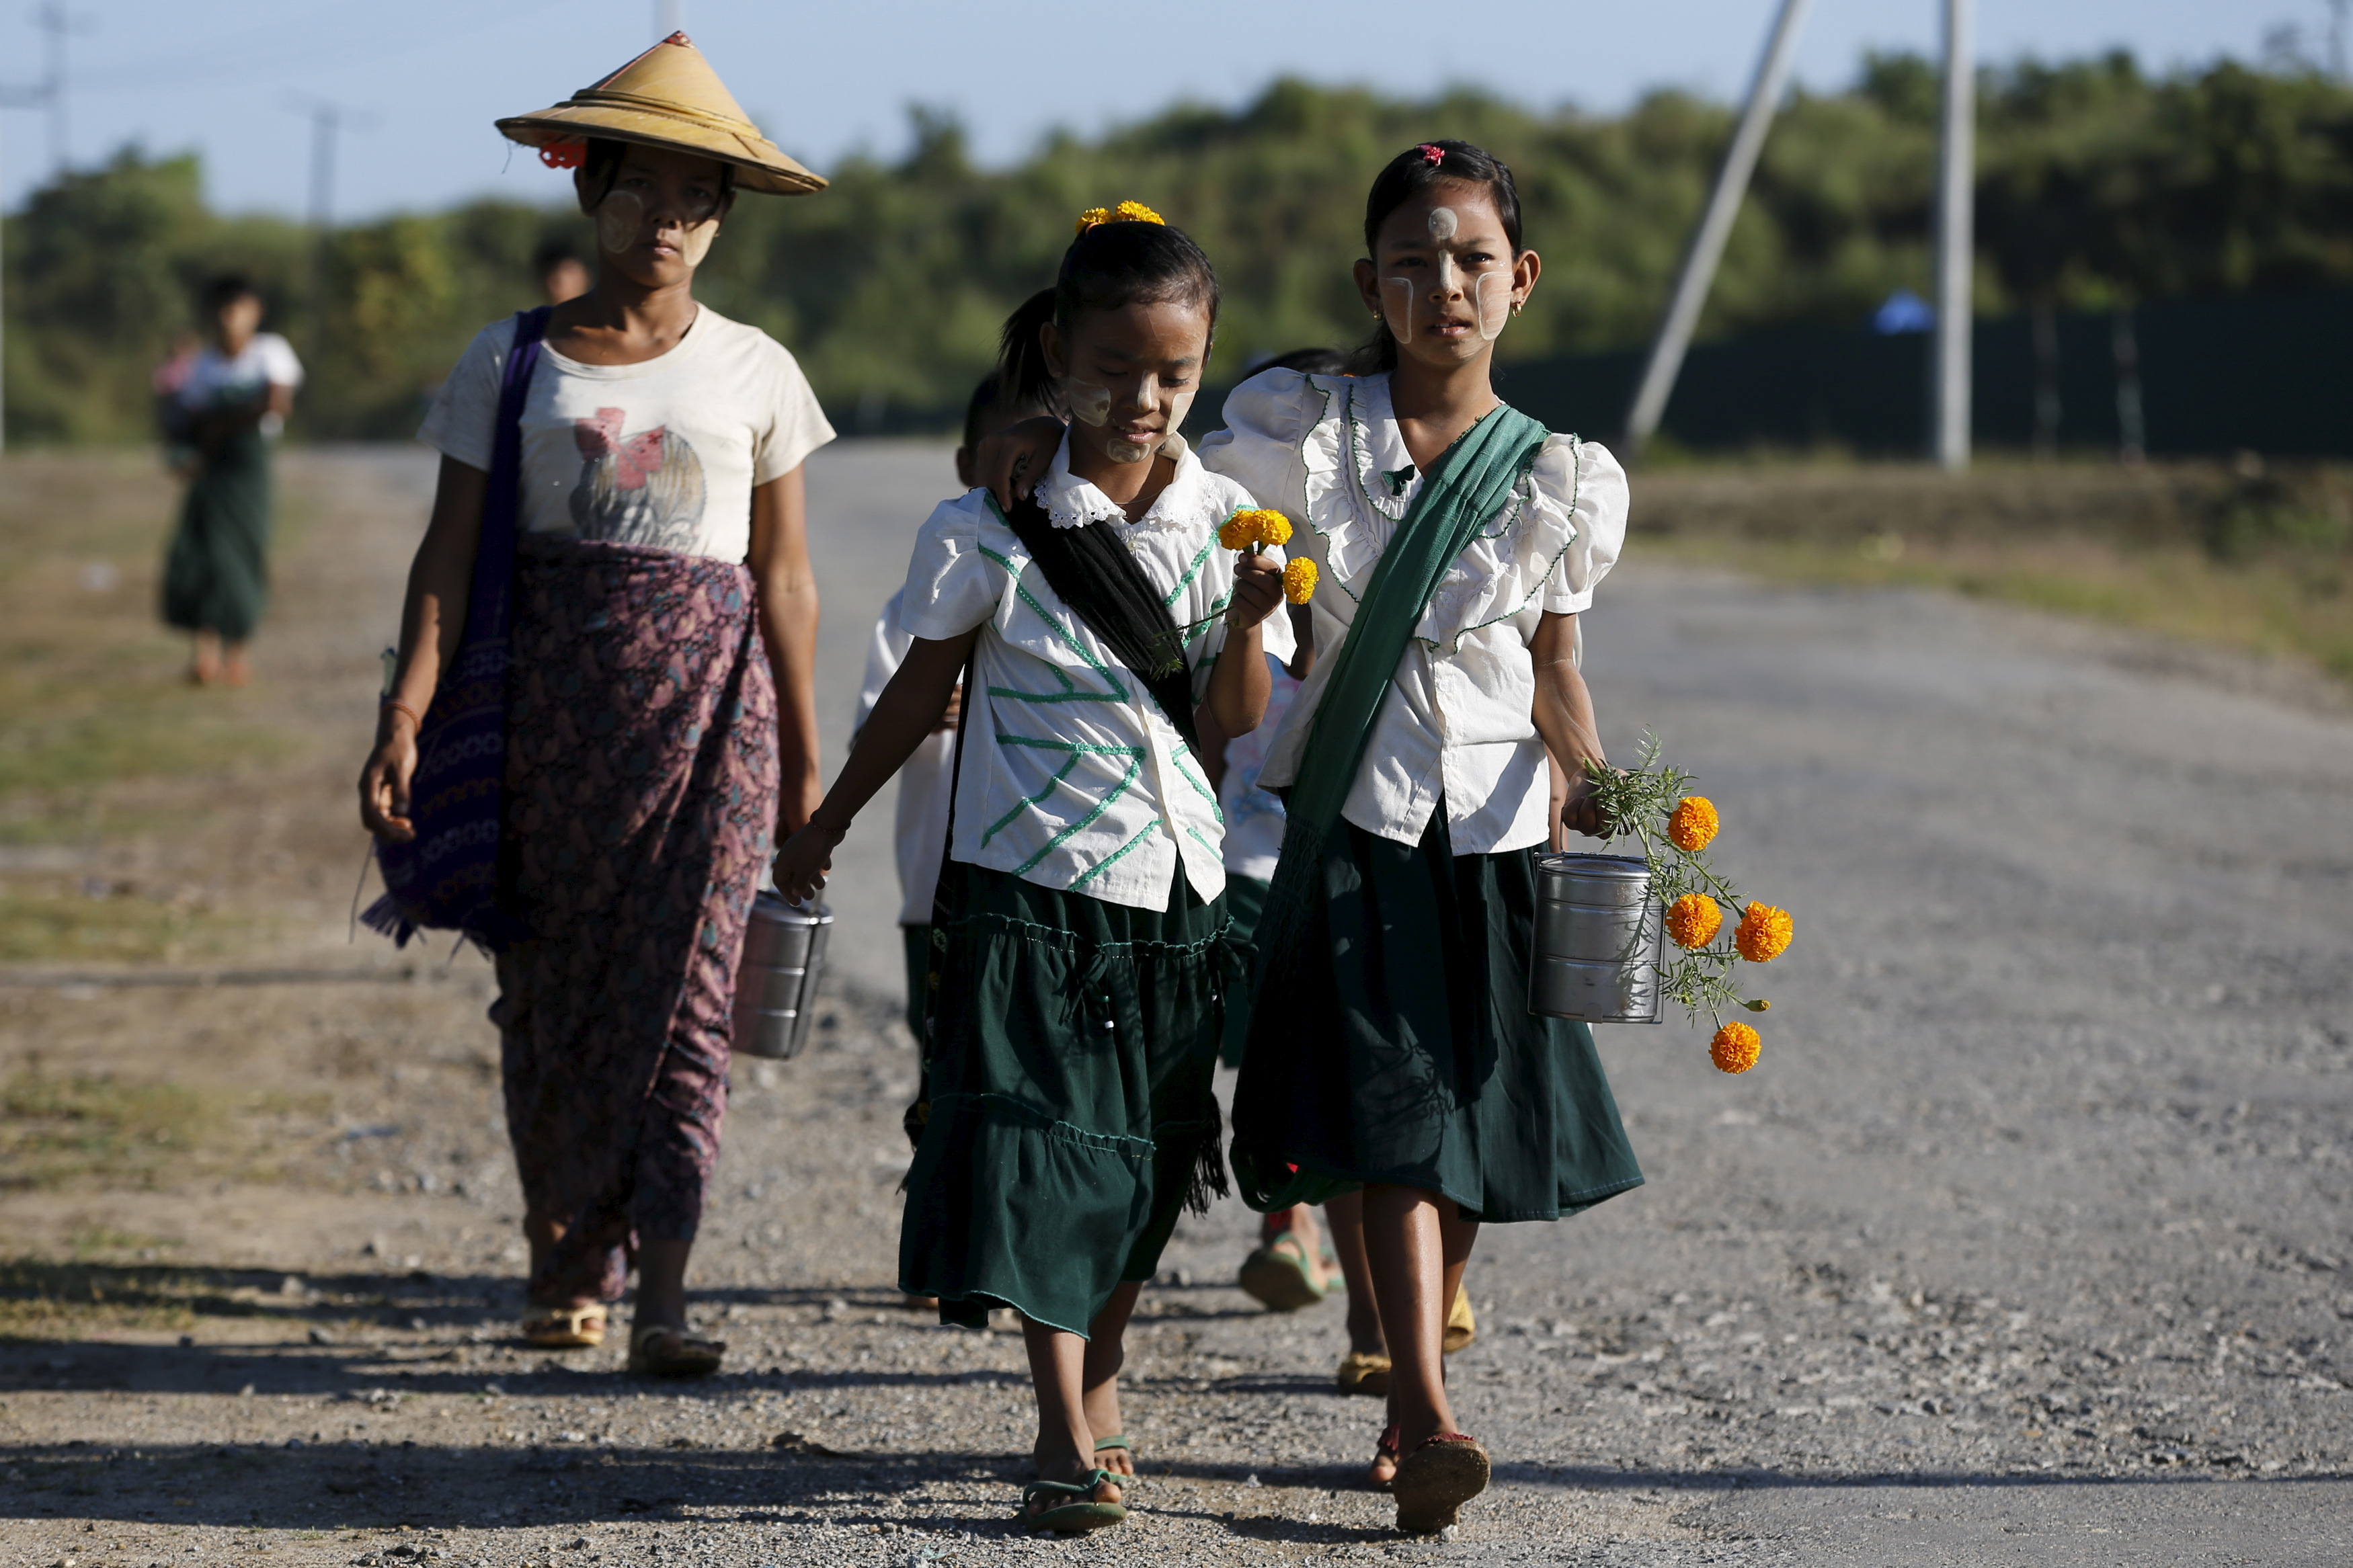 Girls walk to school at the outskirts of Yangon November 4, 2015. Myanmar on November 8 is holding its first free and fair election in 25 years in which democracy icon Aung San Suu Kyi is pitted against the ruling party comprised of former members of a military junta. REUTERS/Jorge Silva - GF20000044866